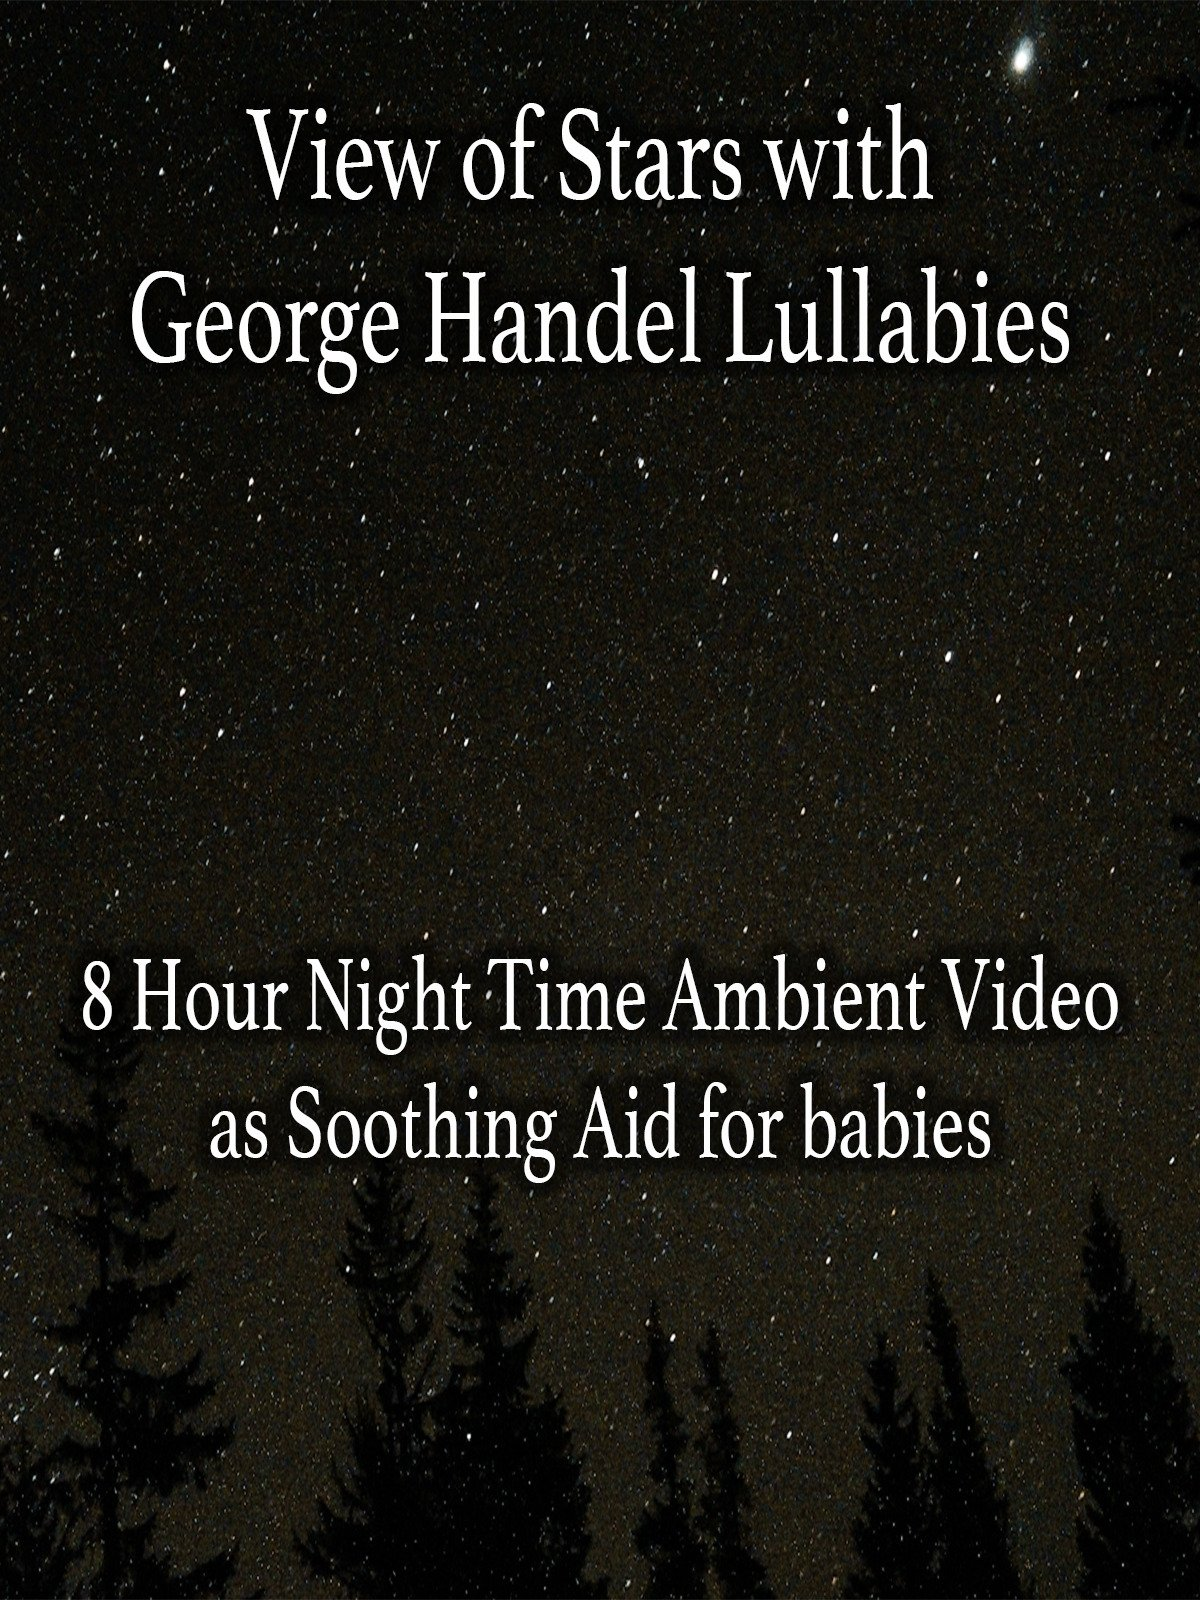 View of Stars with George Handel Lullabies 8 Hour Night Time Ambient Video as Soothing Aid for Babies